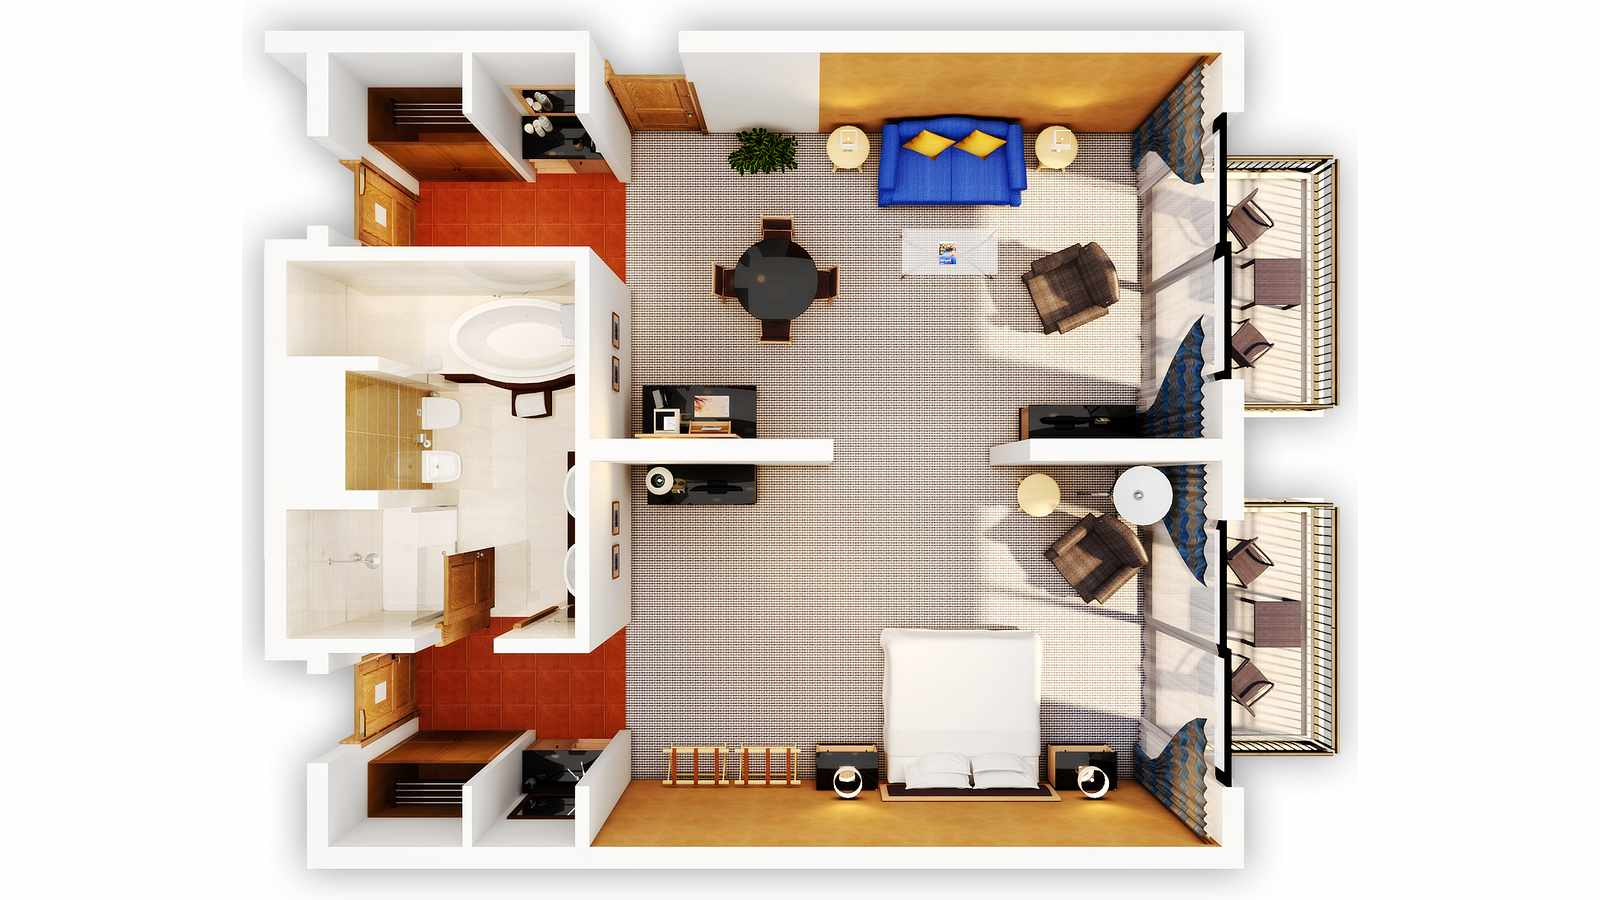 Floor Plan of the Executive Suites